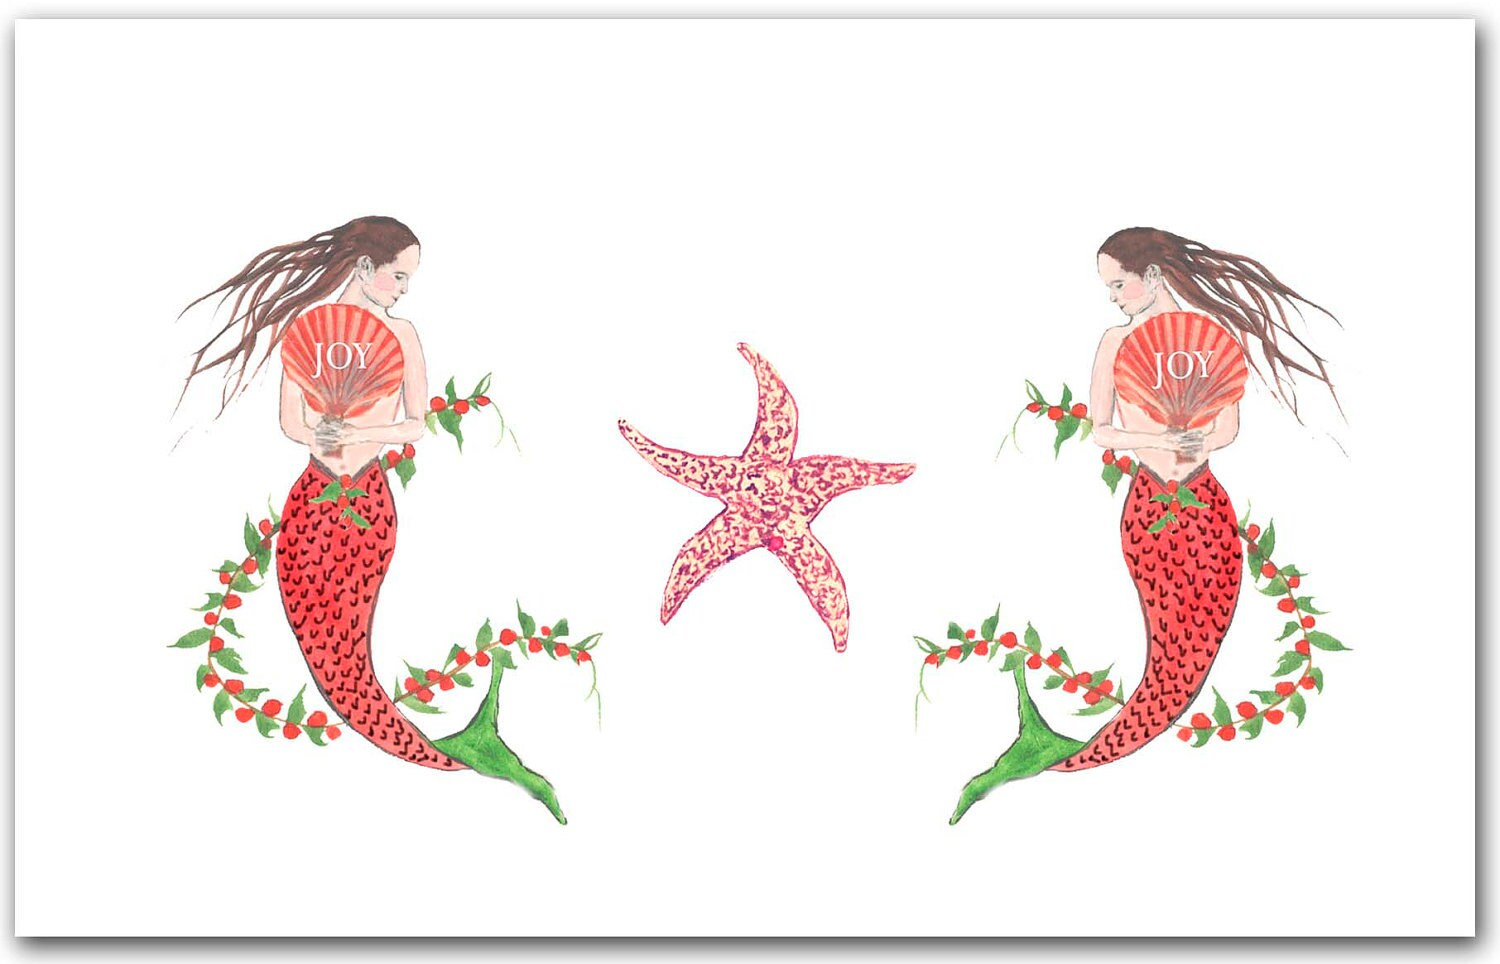 Mermaid Christmas cards. 10 per boxed set. nautical Christmas | Etsy